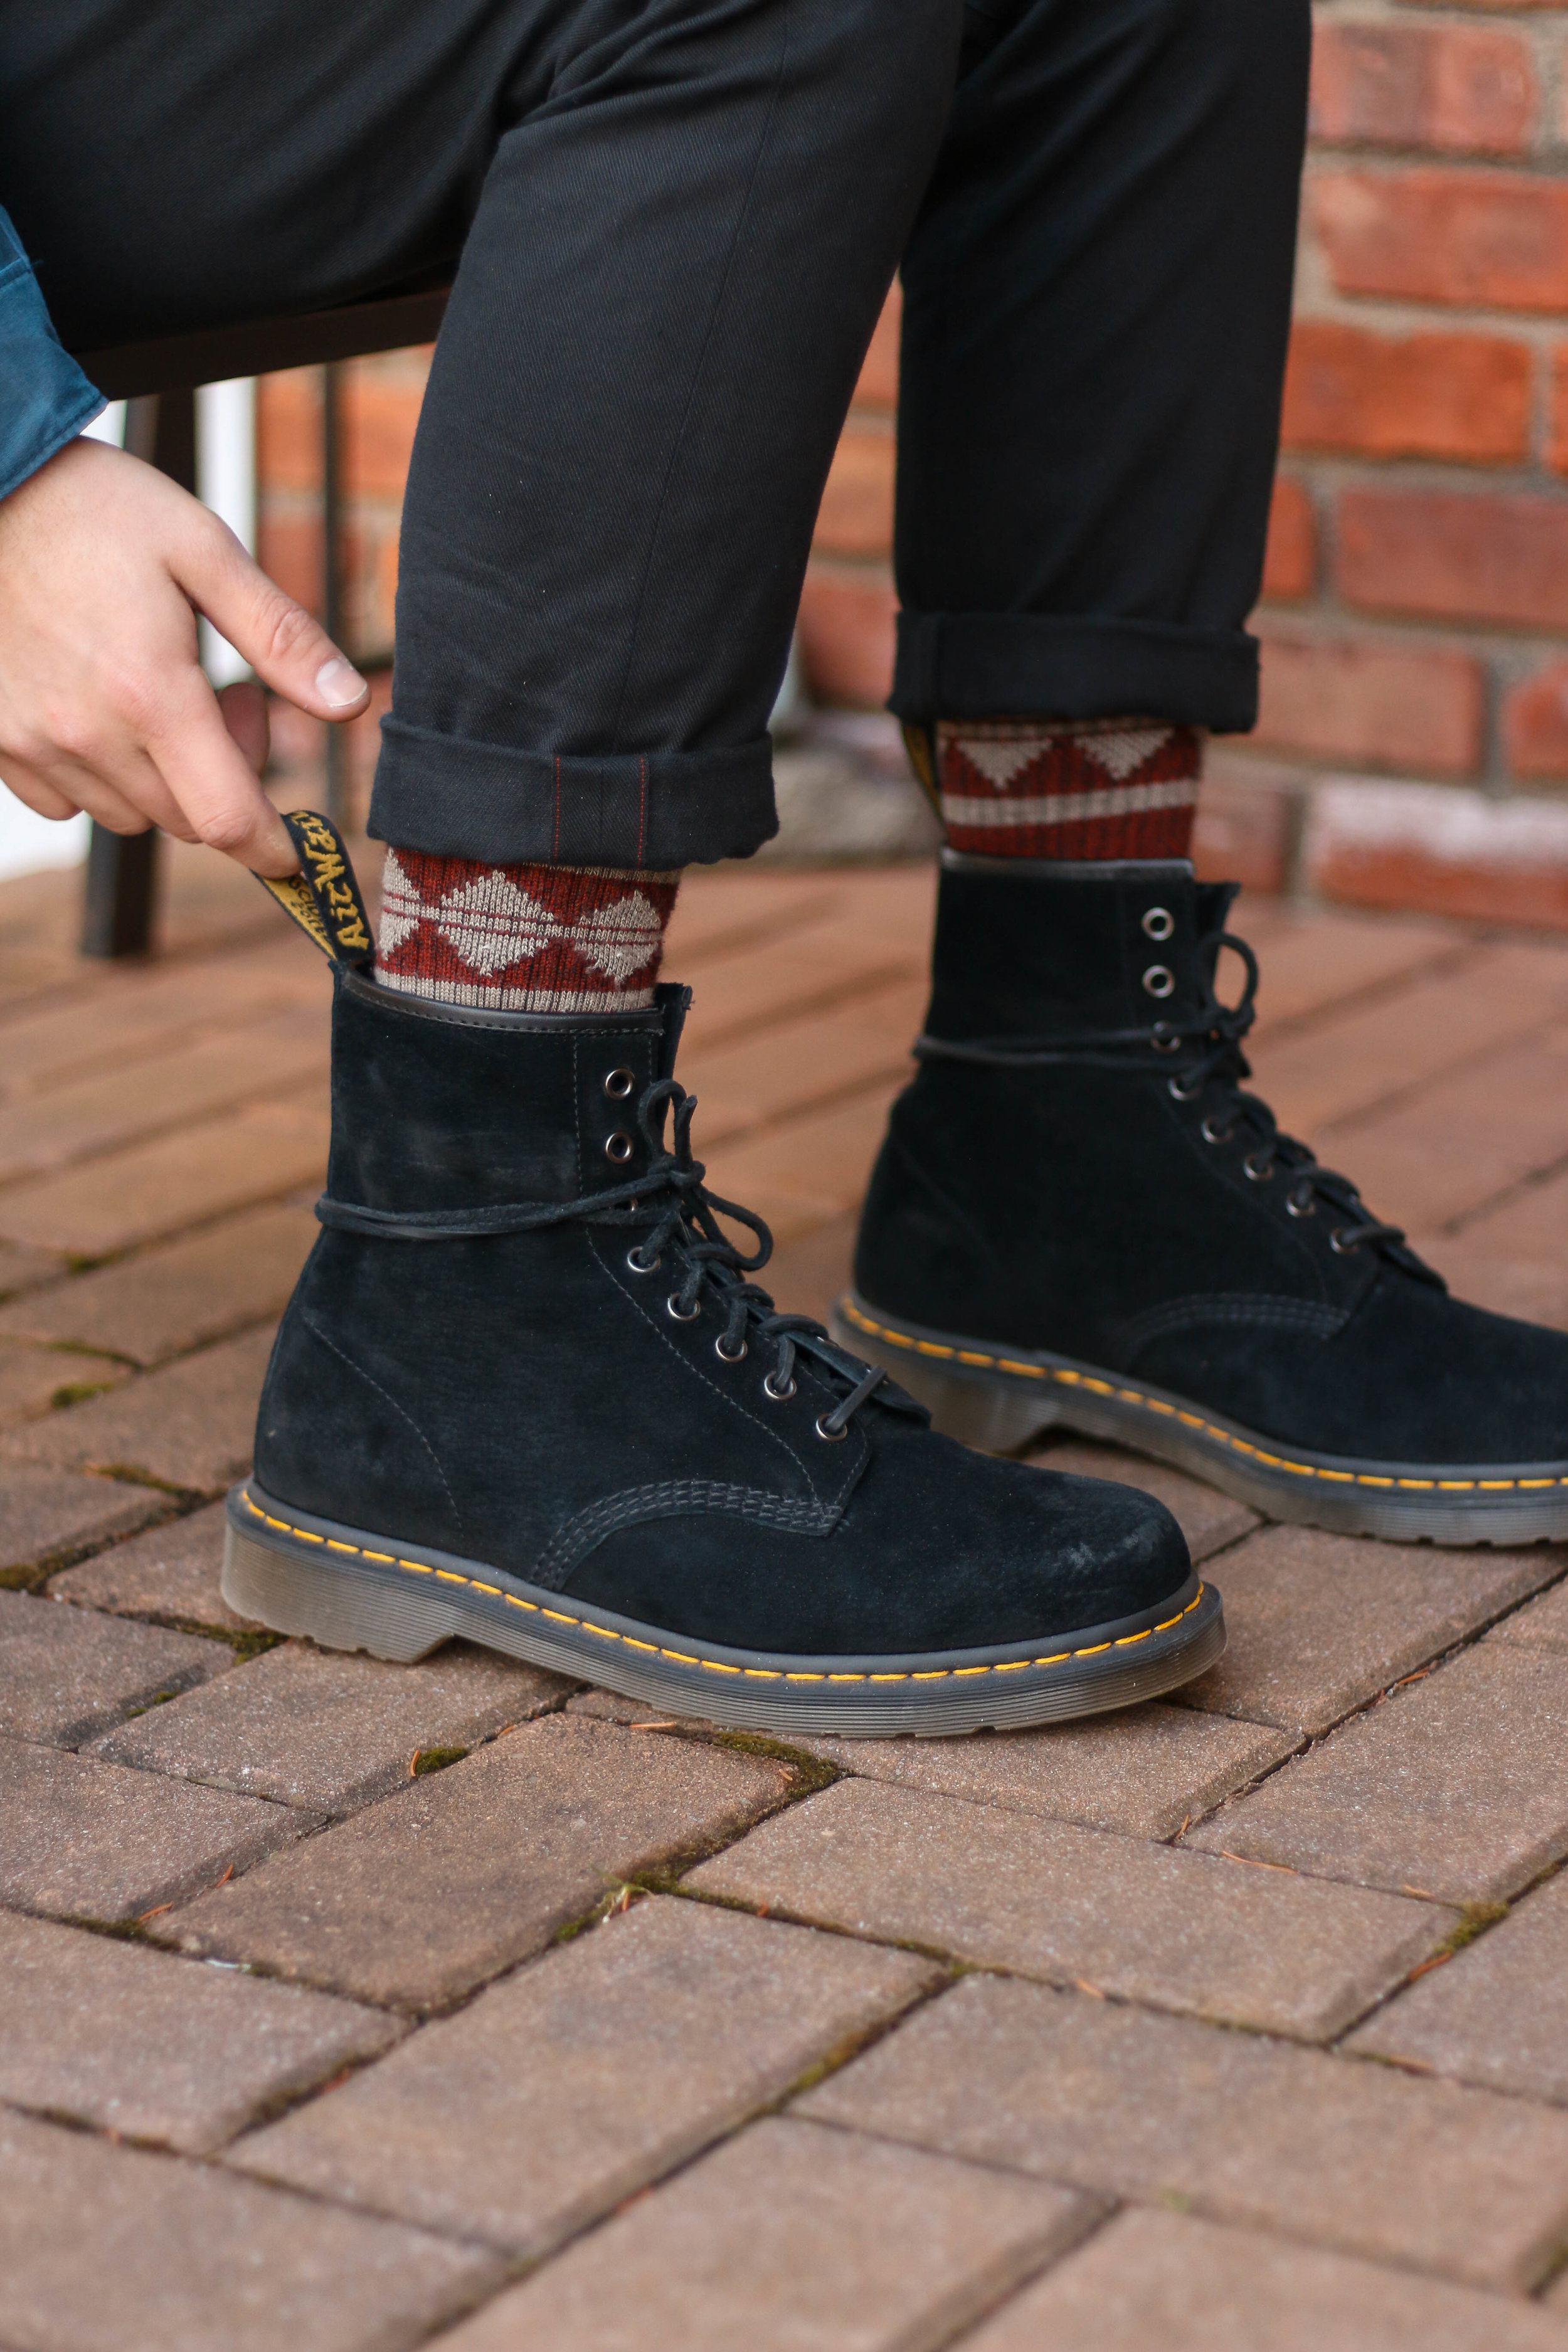 The fit on these is big and loose. It 'doesn't hug the foot vs my Red Wing Heritage boots which fit like a glove.